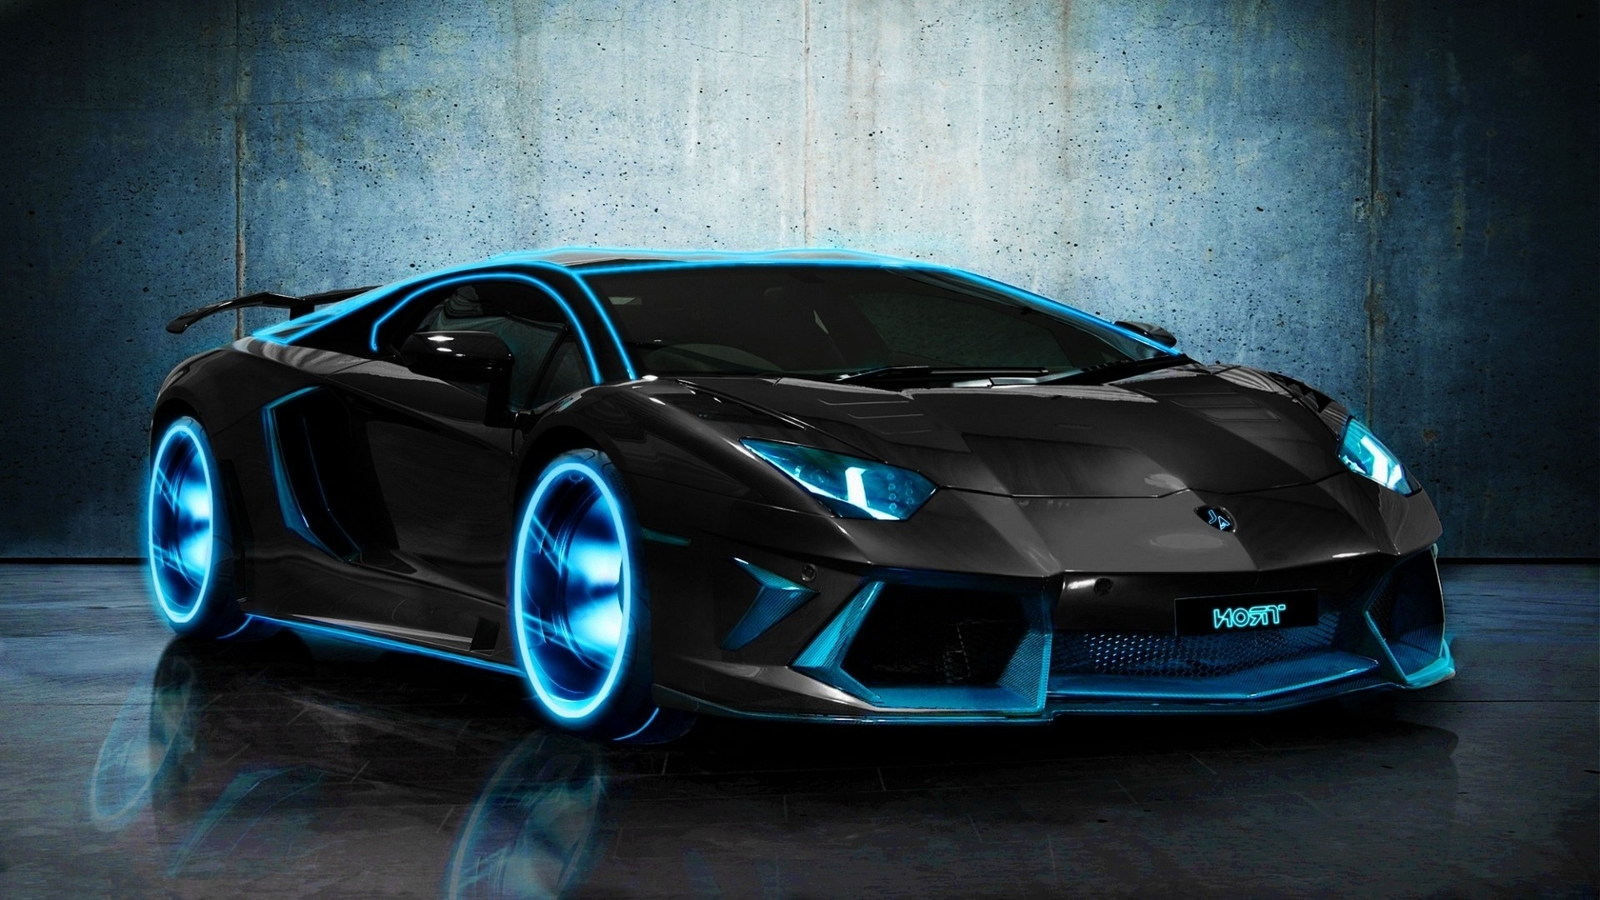 Spectacular Free High Definition Tron Lamborghini Aventador Wallpapers 1600x900px